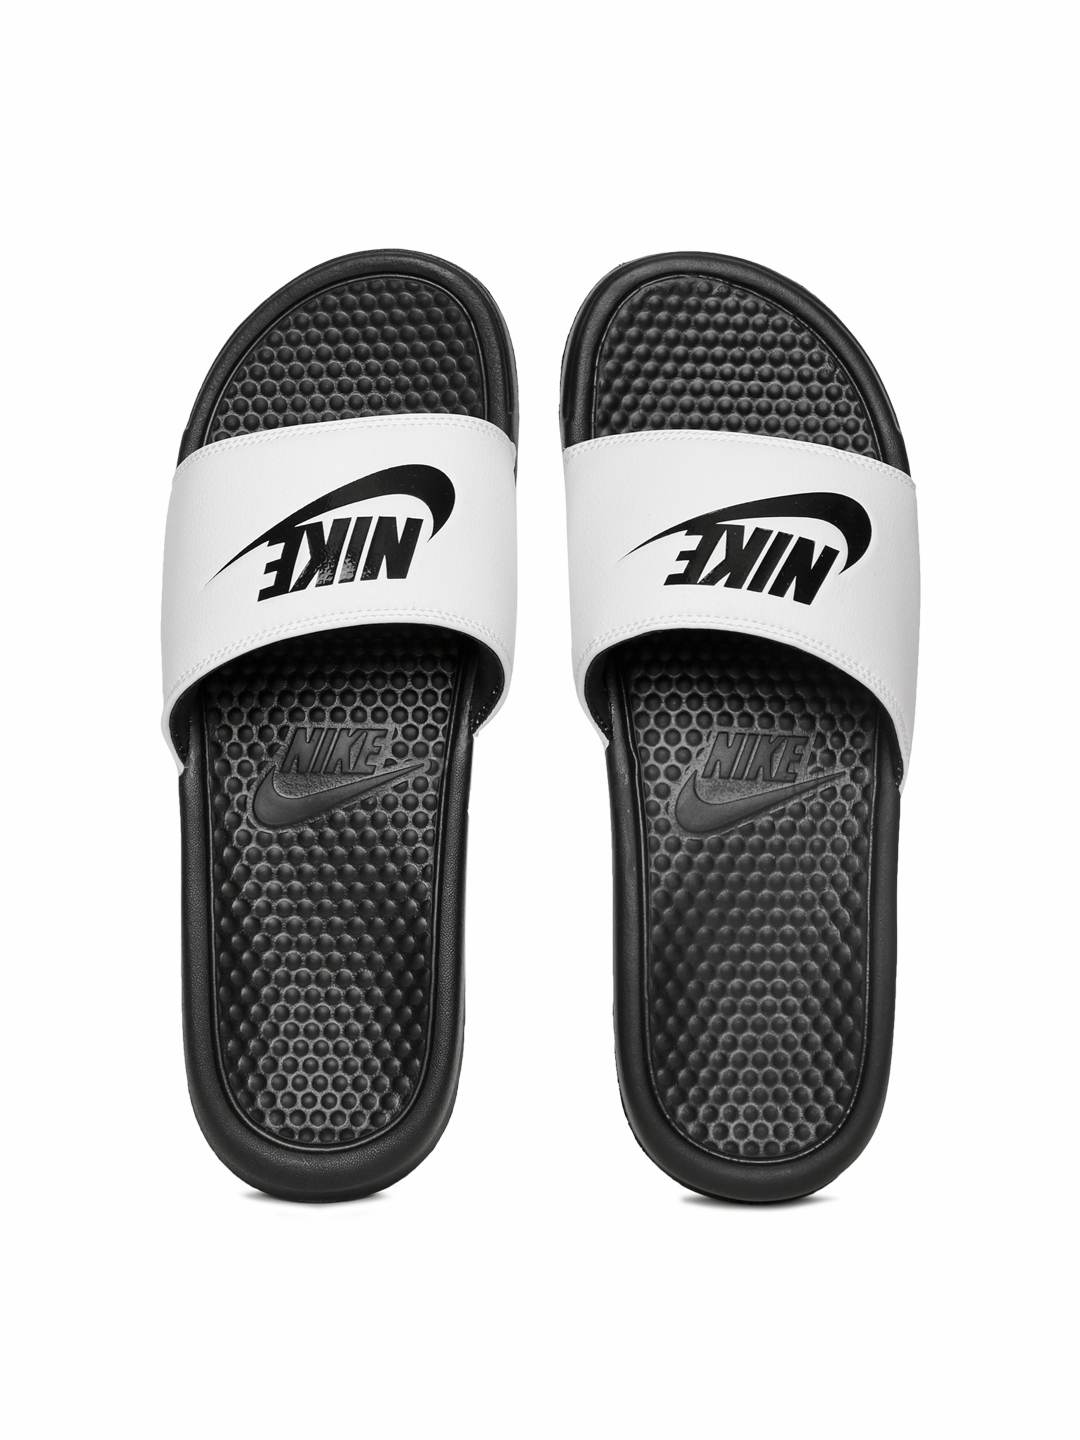 b91cfb8bb4 Buy Nike Men White   Black BENASSI JDI Printed Flip Flops - Flip ...